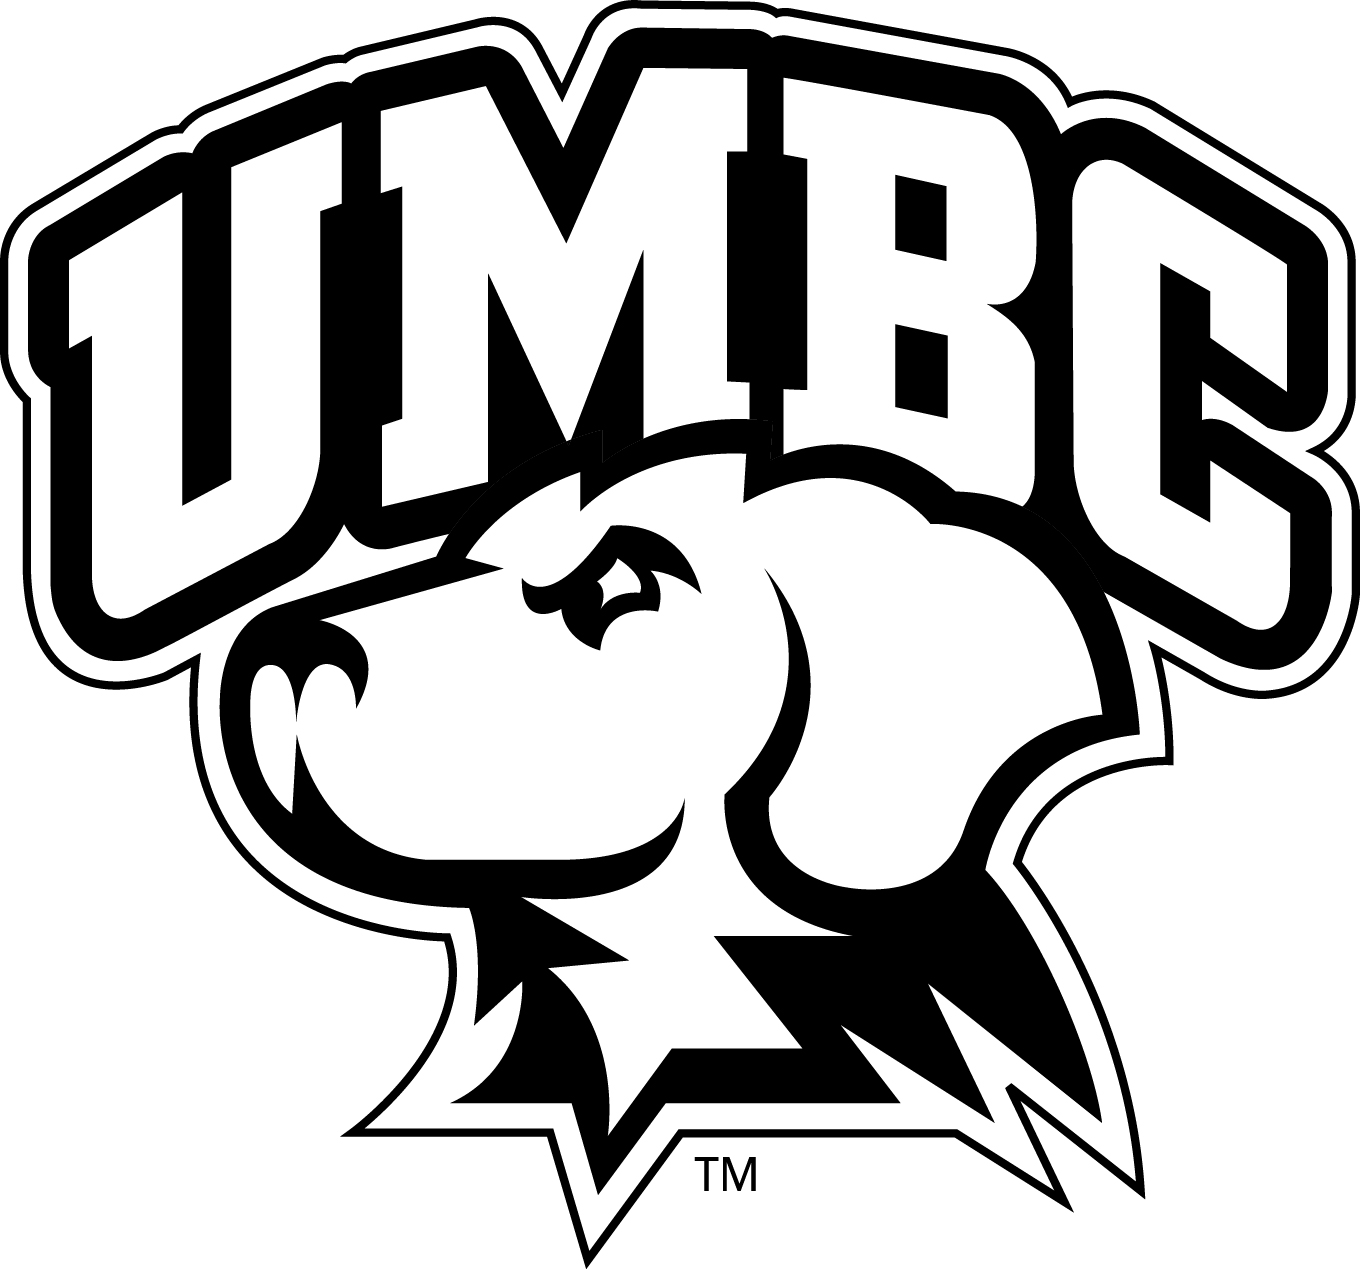 logos - umbc brand and style guide